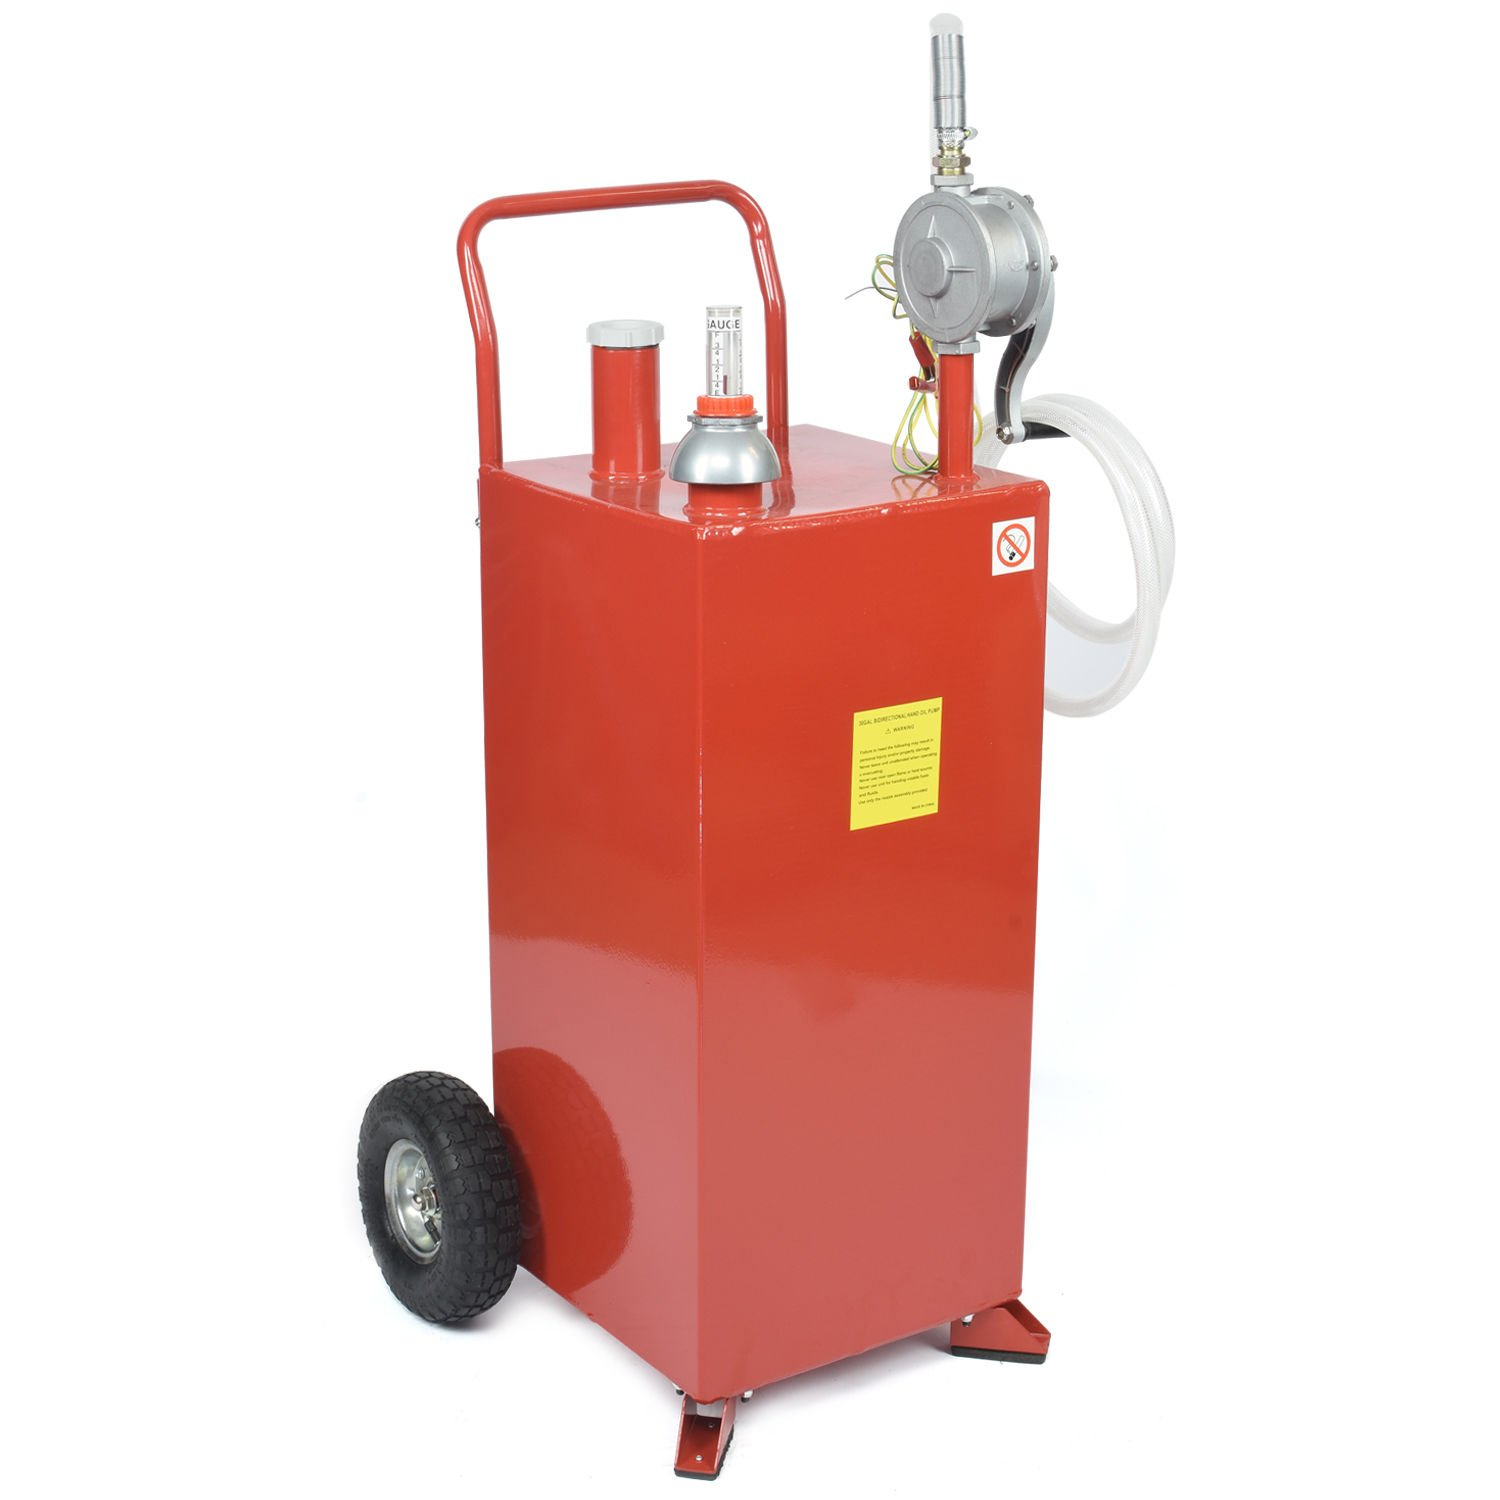 30 Gallon Gas Fuel Diesel Caddy Transfer Tank Container w/ Rotary Pump Tool by Wang Tong Shop (Image #1)